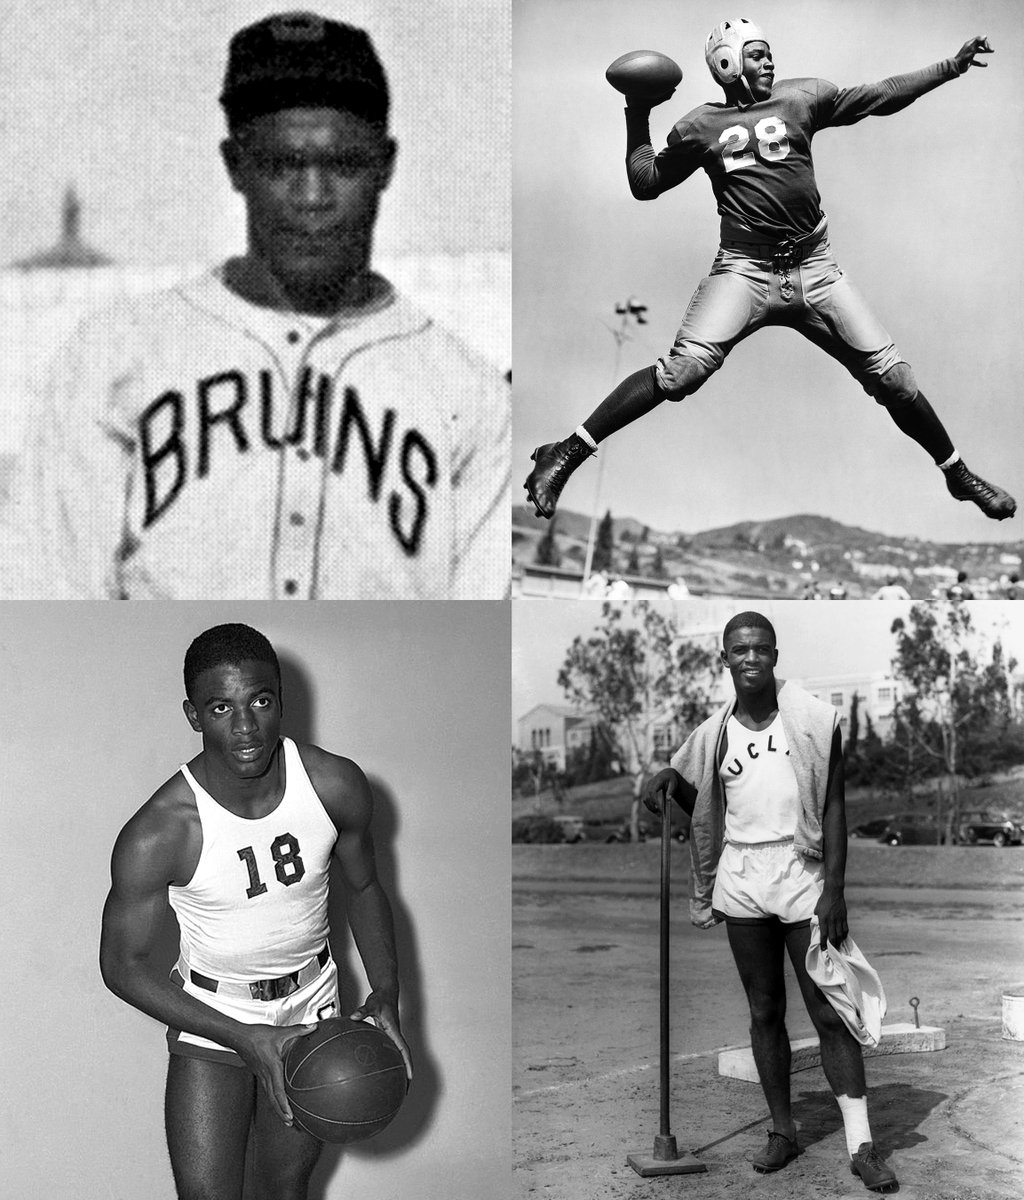 In Jackie Robinson's first baseball game for UCLA, the four-sport star collected four hits and four stolen bases. pic.twitter.com/jzJyuUrNl7